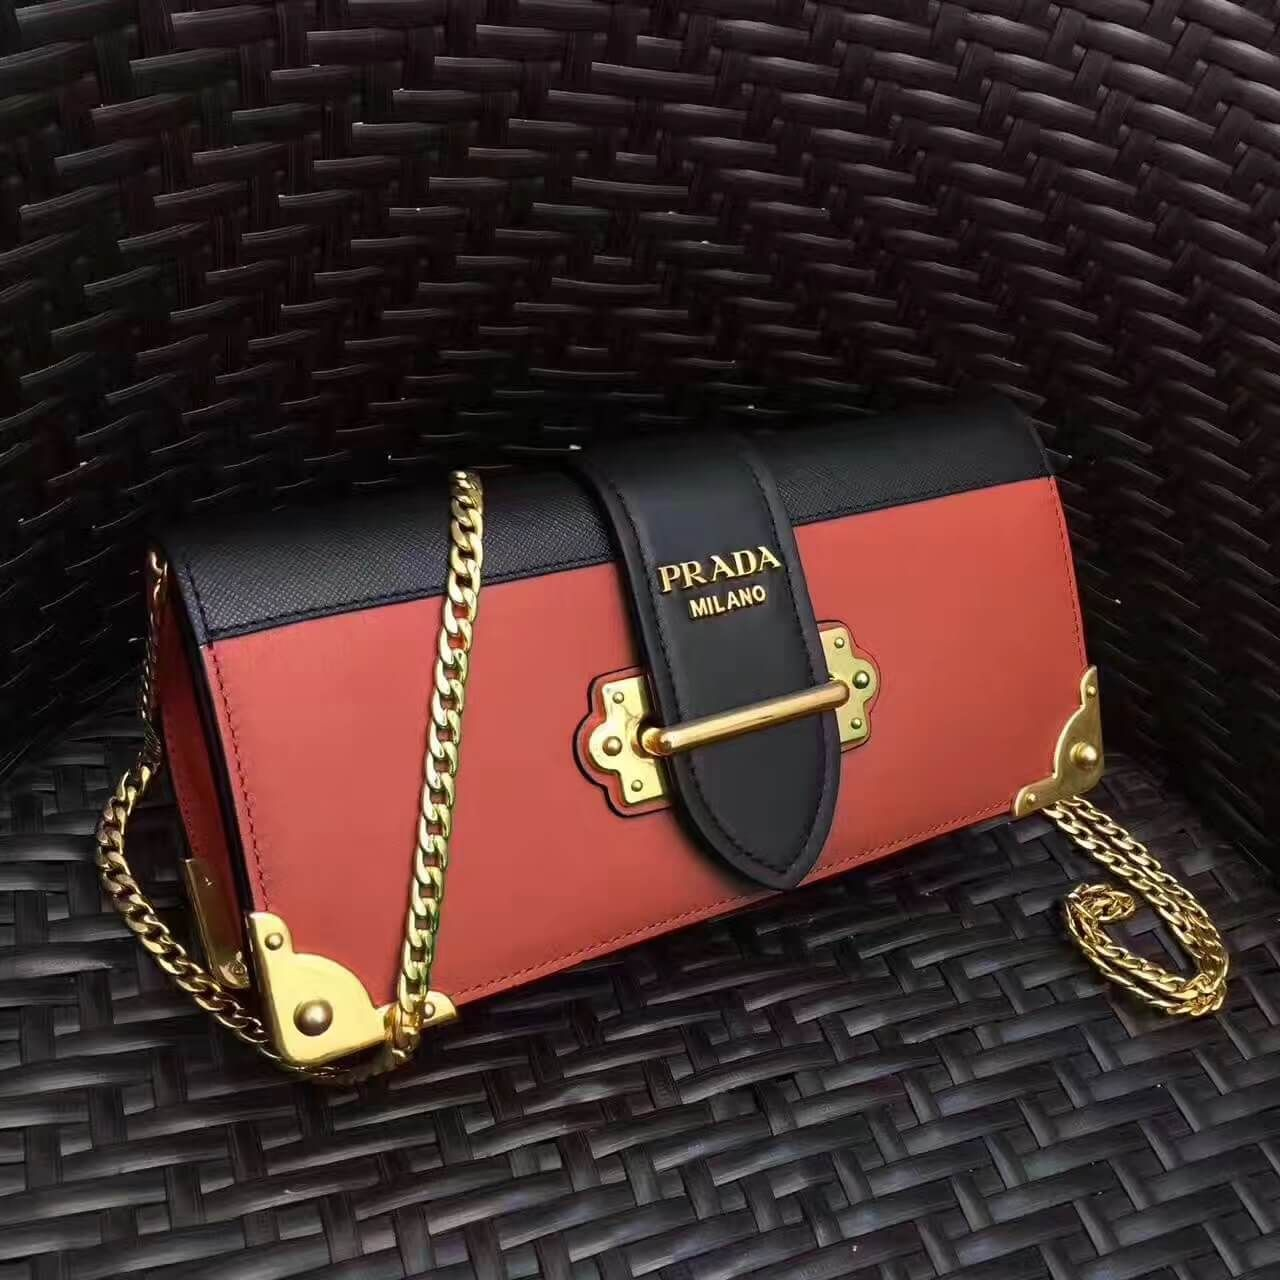 9f30799a9ce651 Prada Cahier Calf Leather and Saffiano Leather Clutch Bag 1BF048 Terracotta/Black  2017